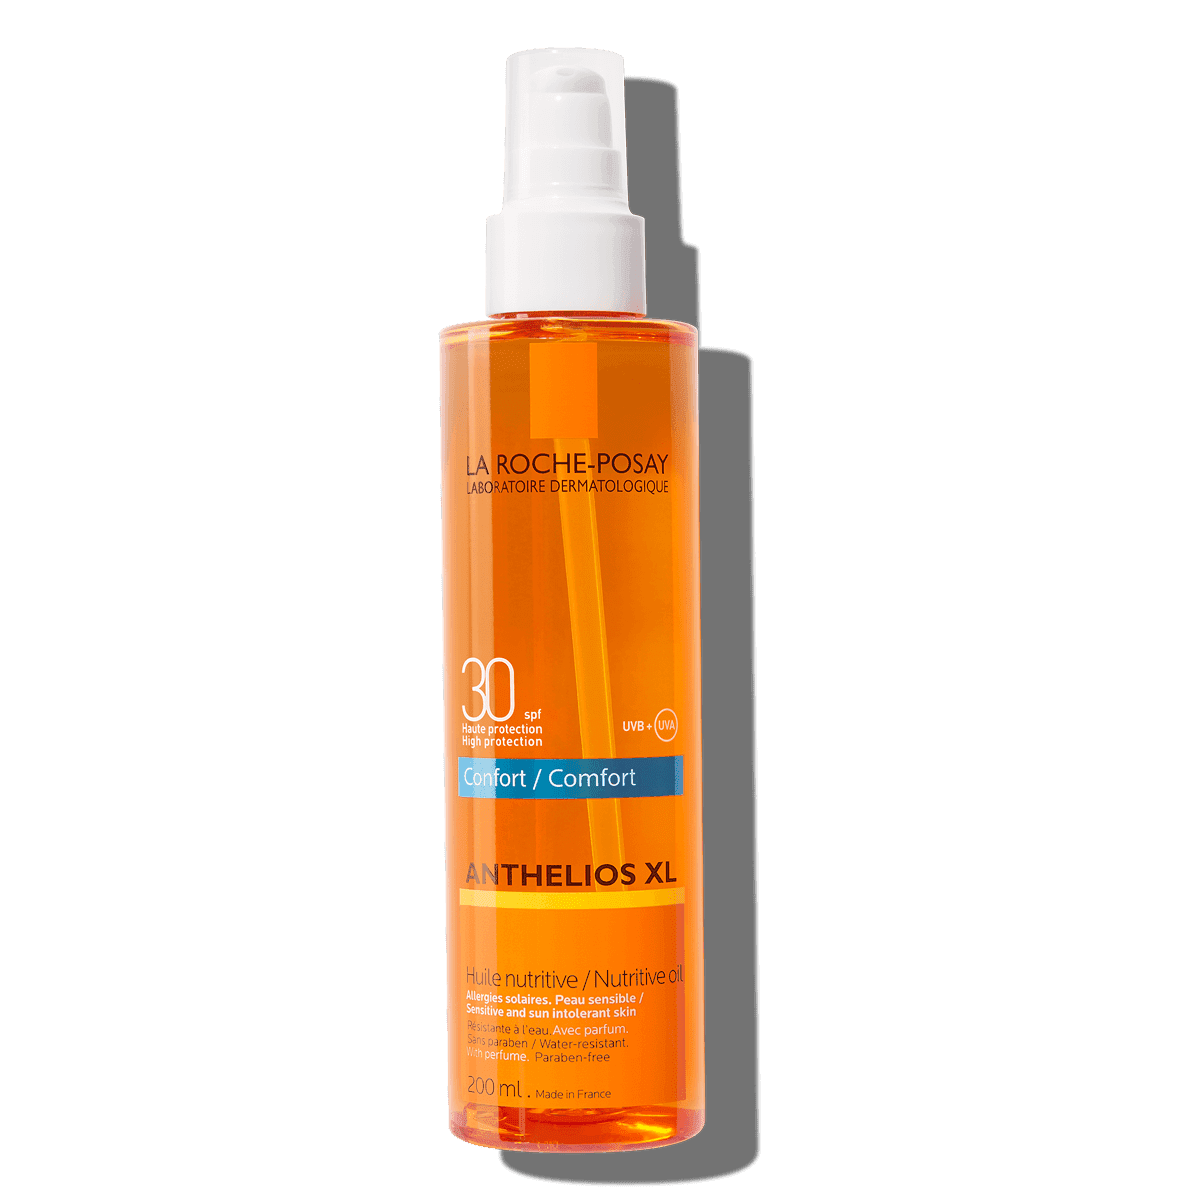 La Roche Posay ProductPage Sun Anthelios Nutritive Oil Comfort Spf30 2